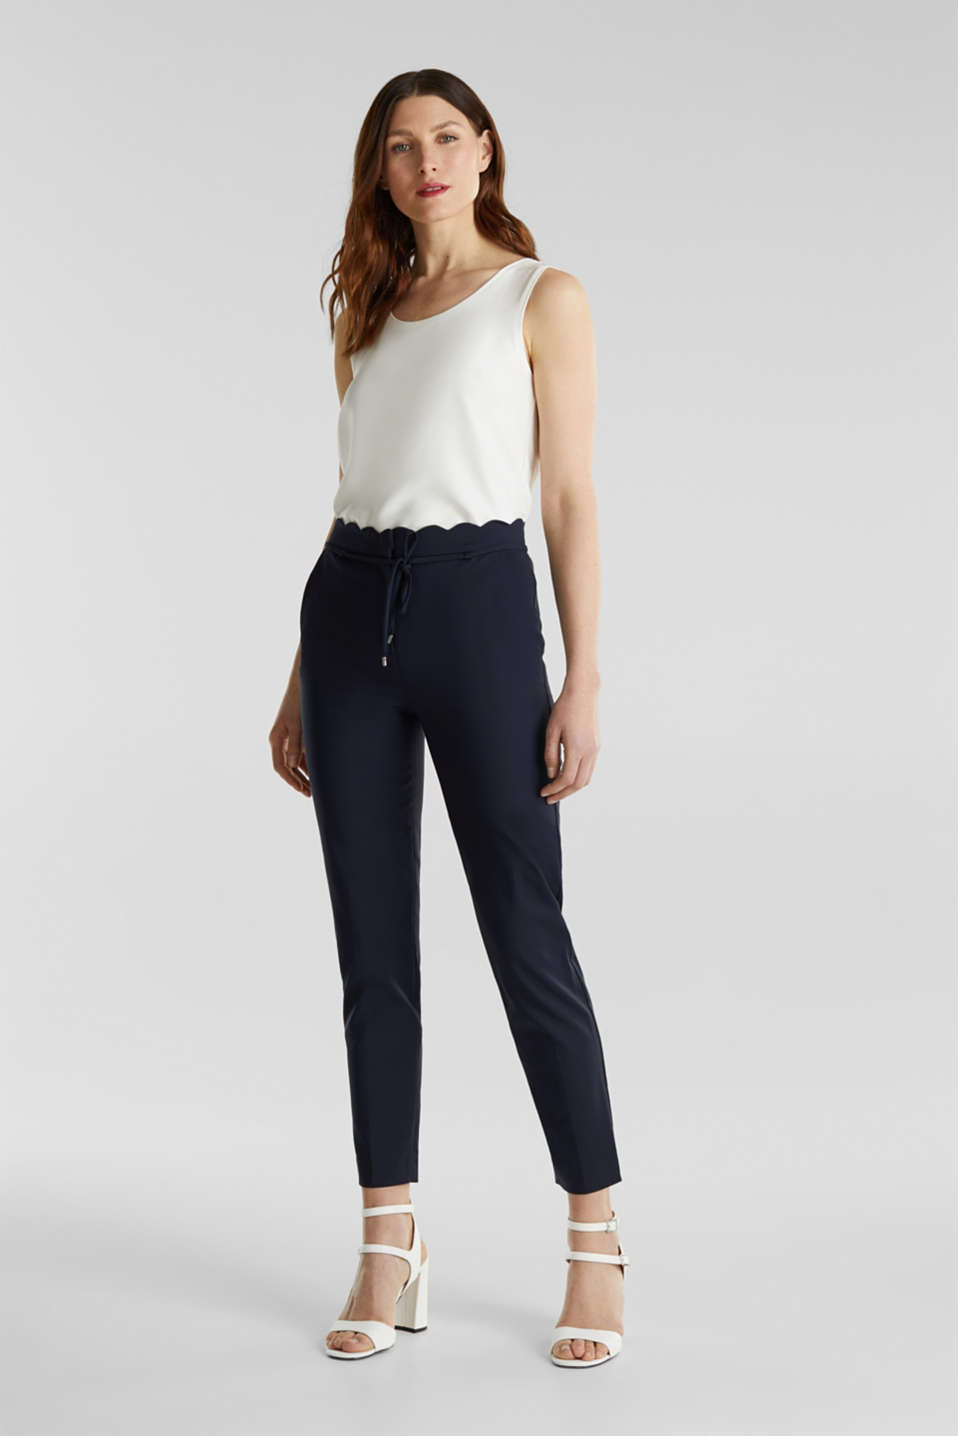 Esprit - Ankle-length trousers with a scalloped waistband